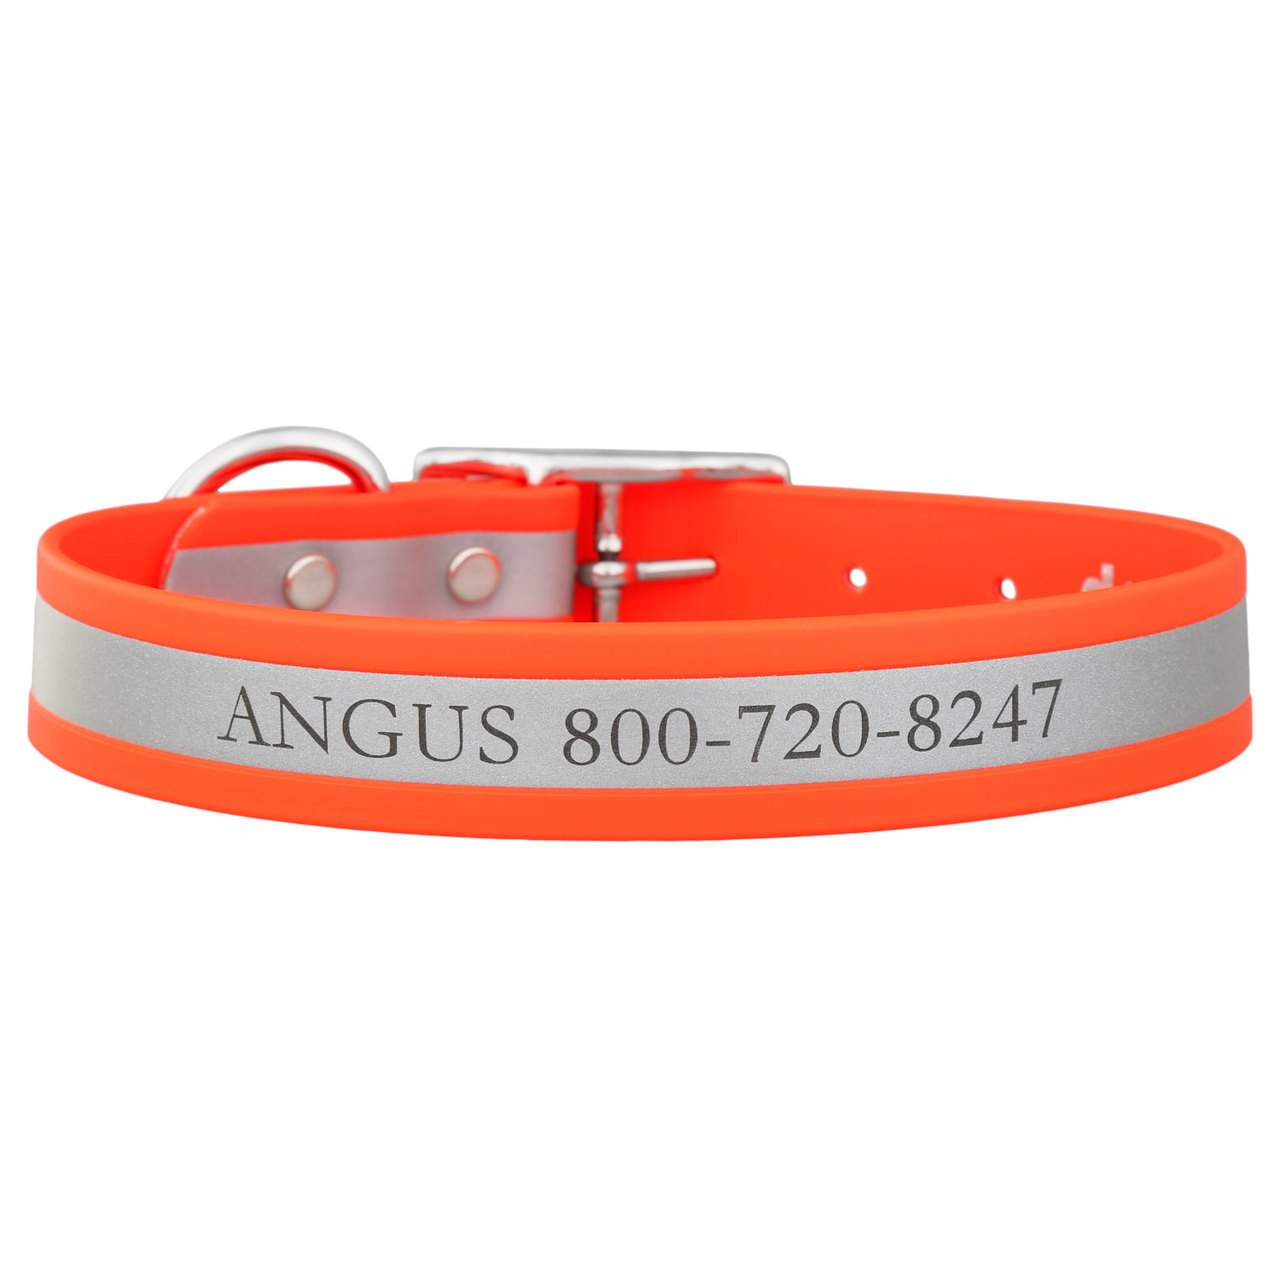 Engraved Reflective Waterproof Soft Grip Dog Collar Orange